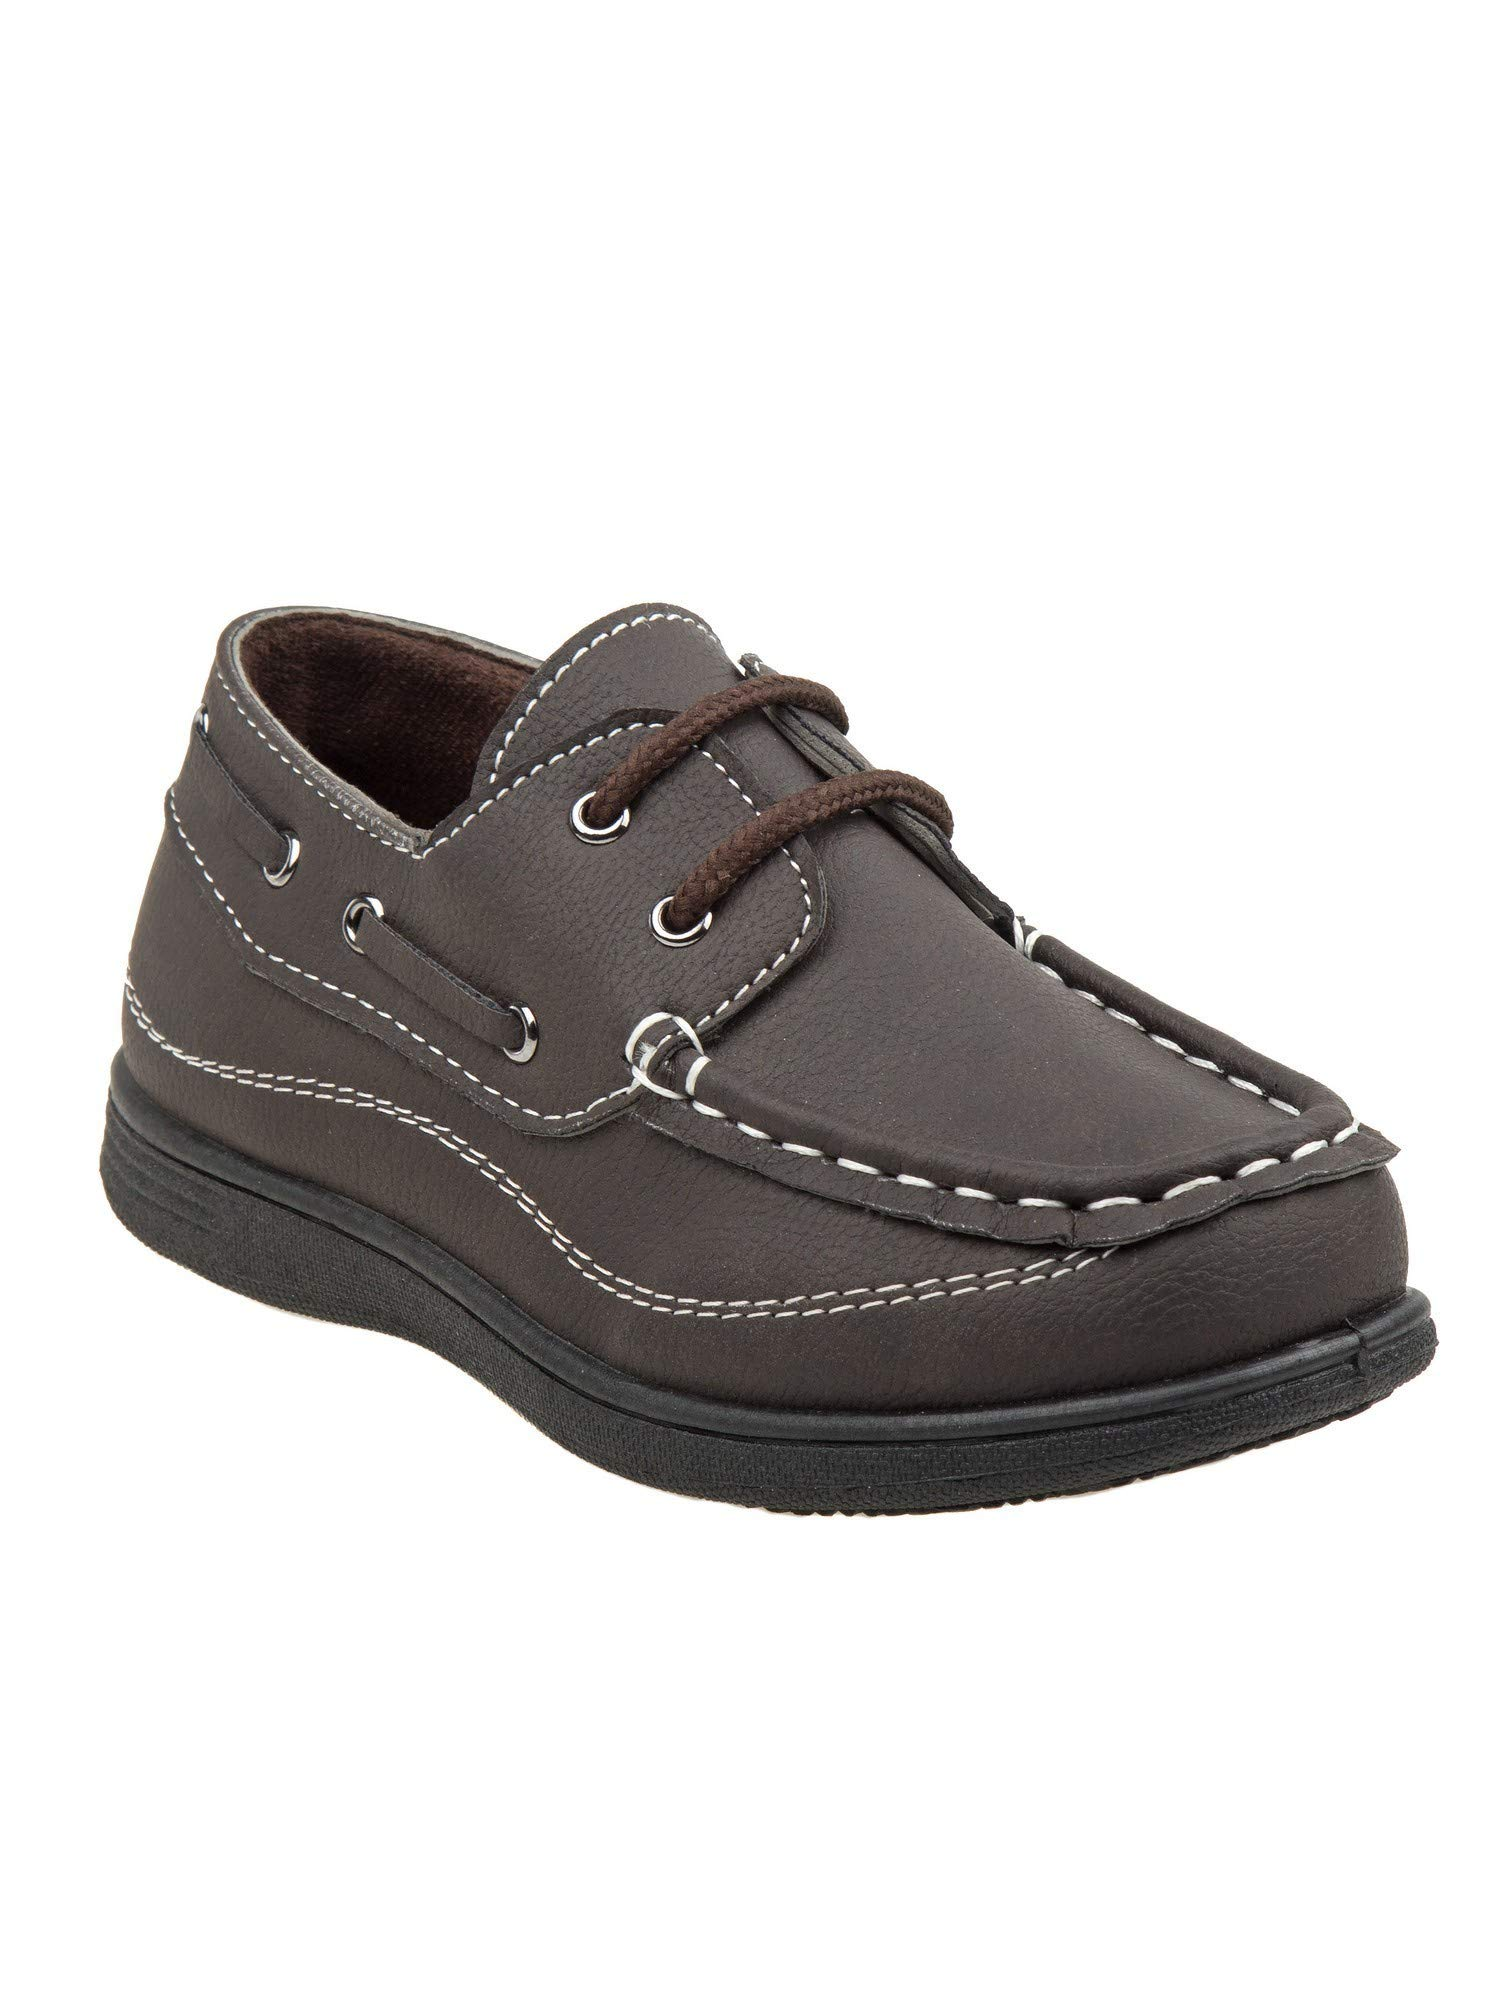 Josmo Little Boys Brown Stitching Detail Lace Closure Boat Shoes 8 Toddler